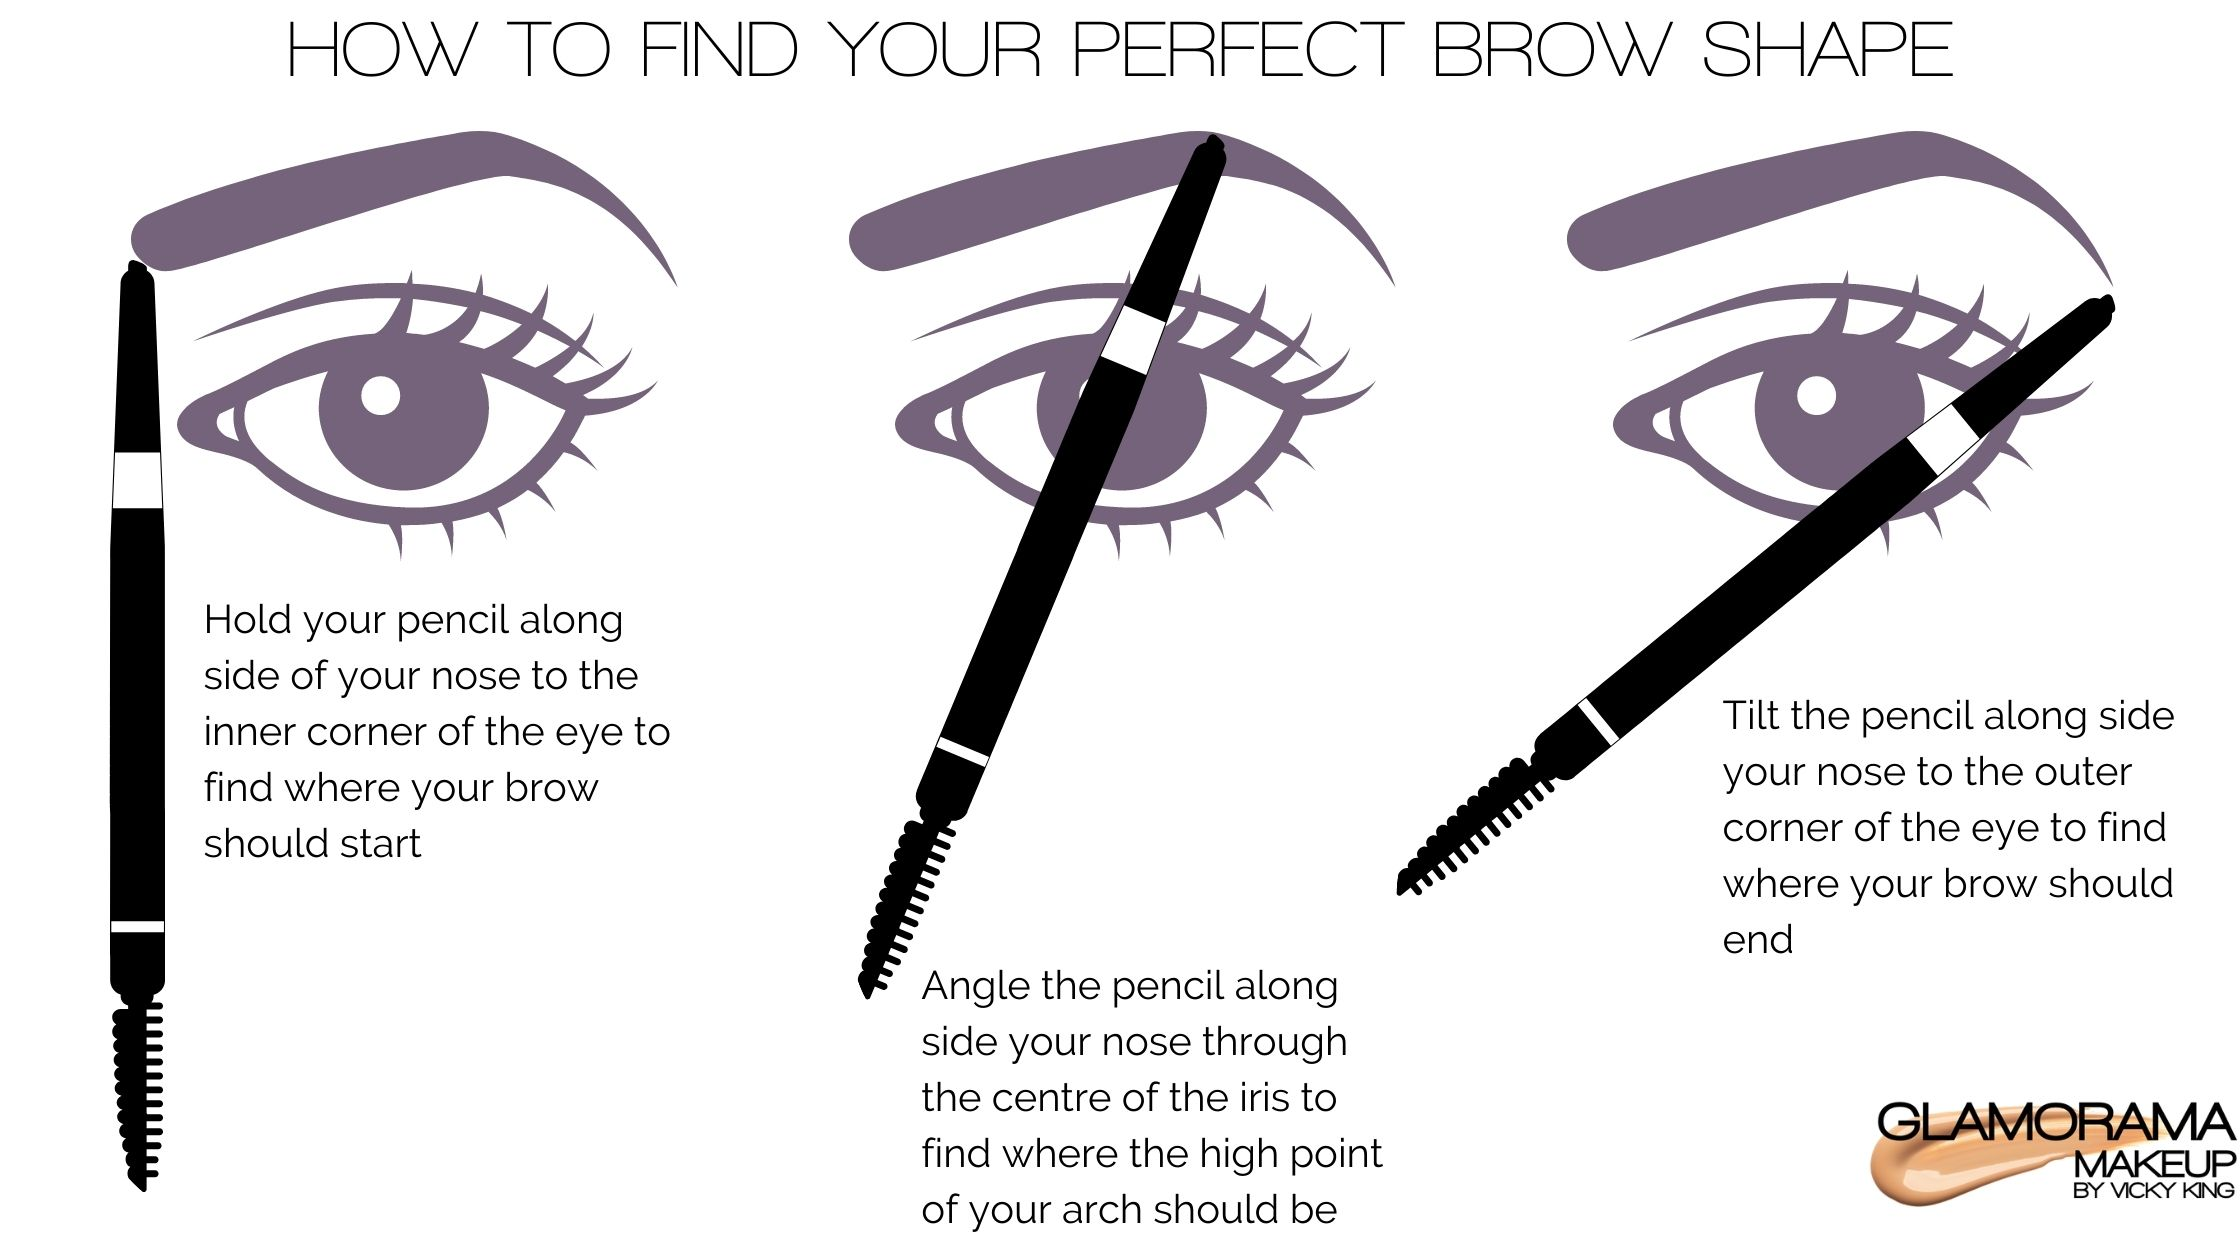 how to find your perfect brow shape info graphic